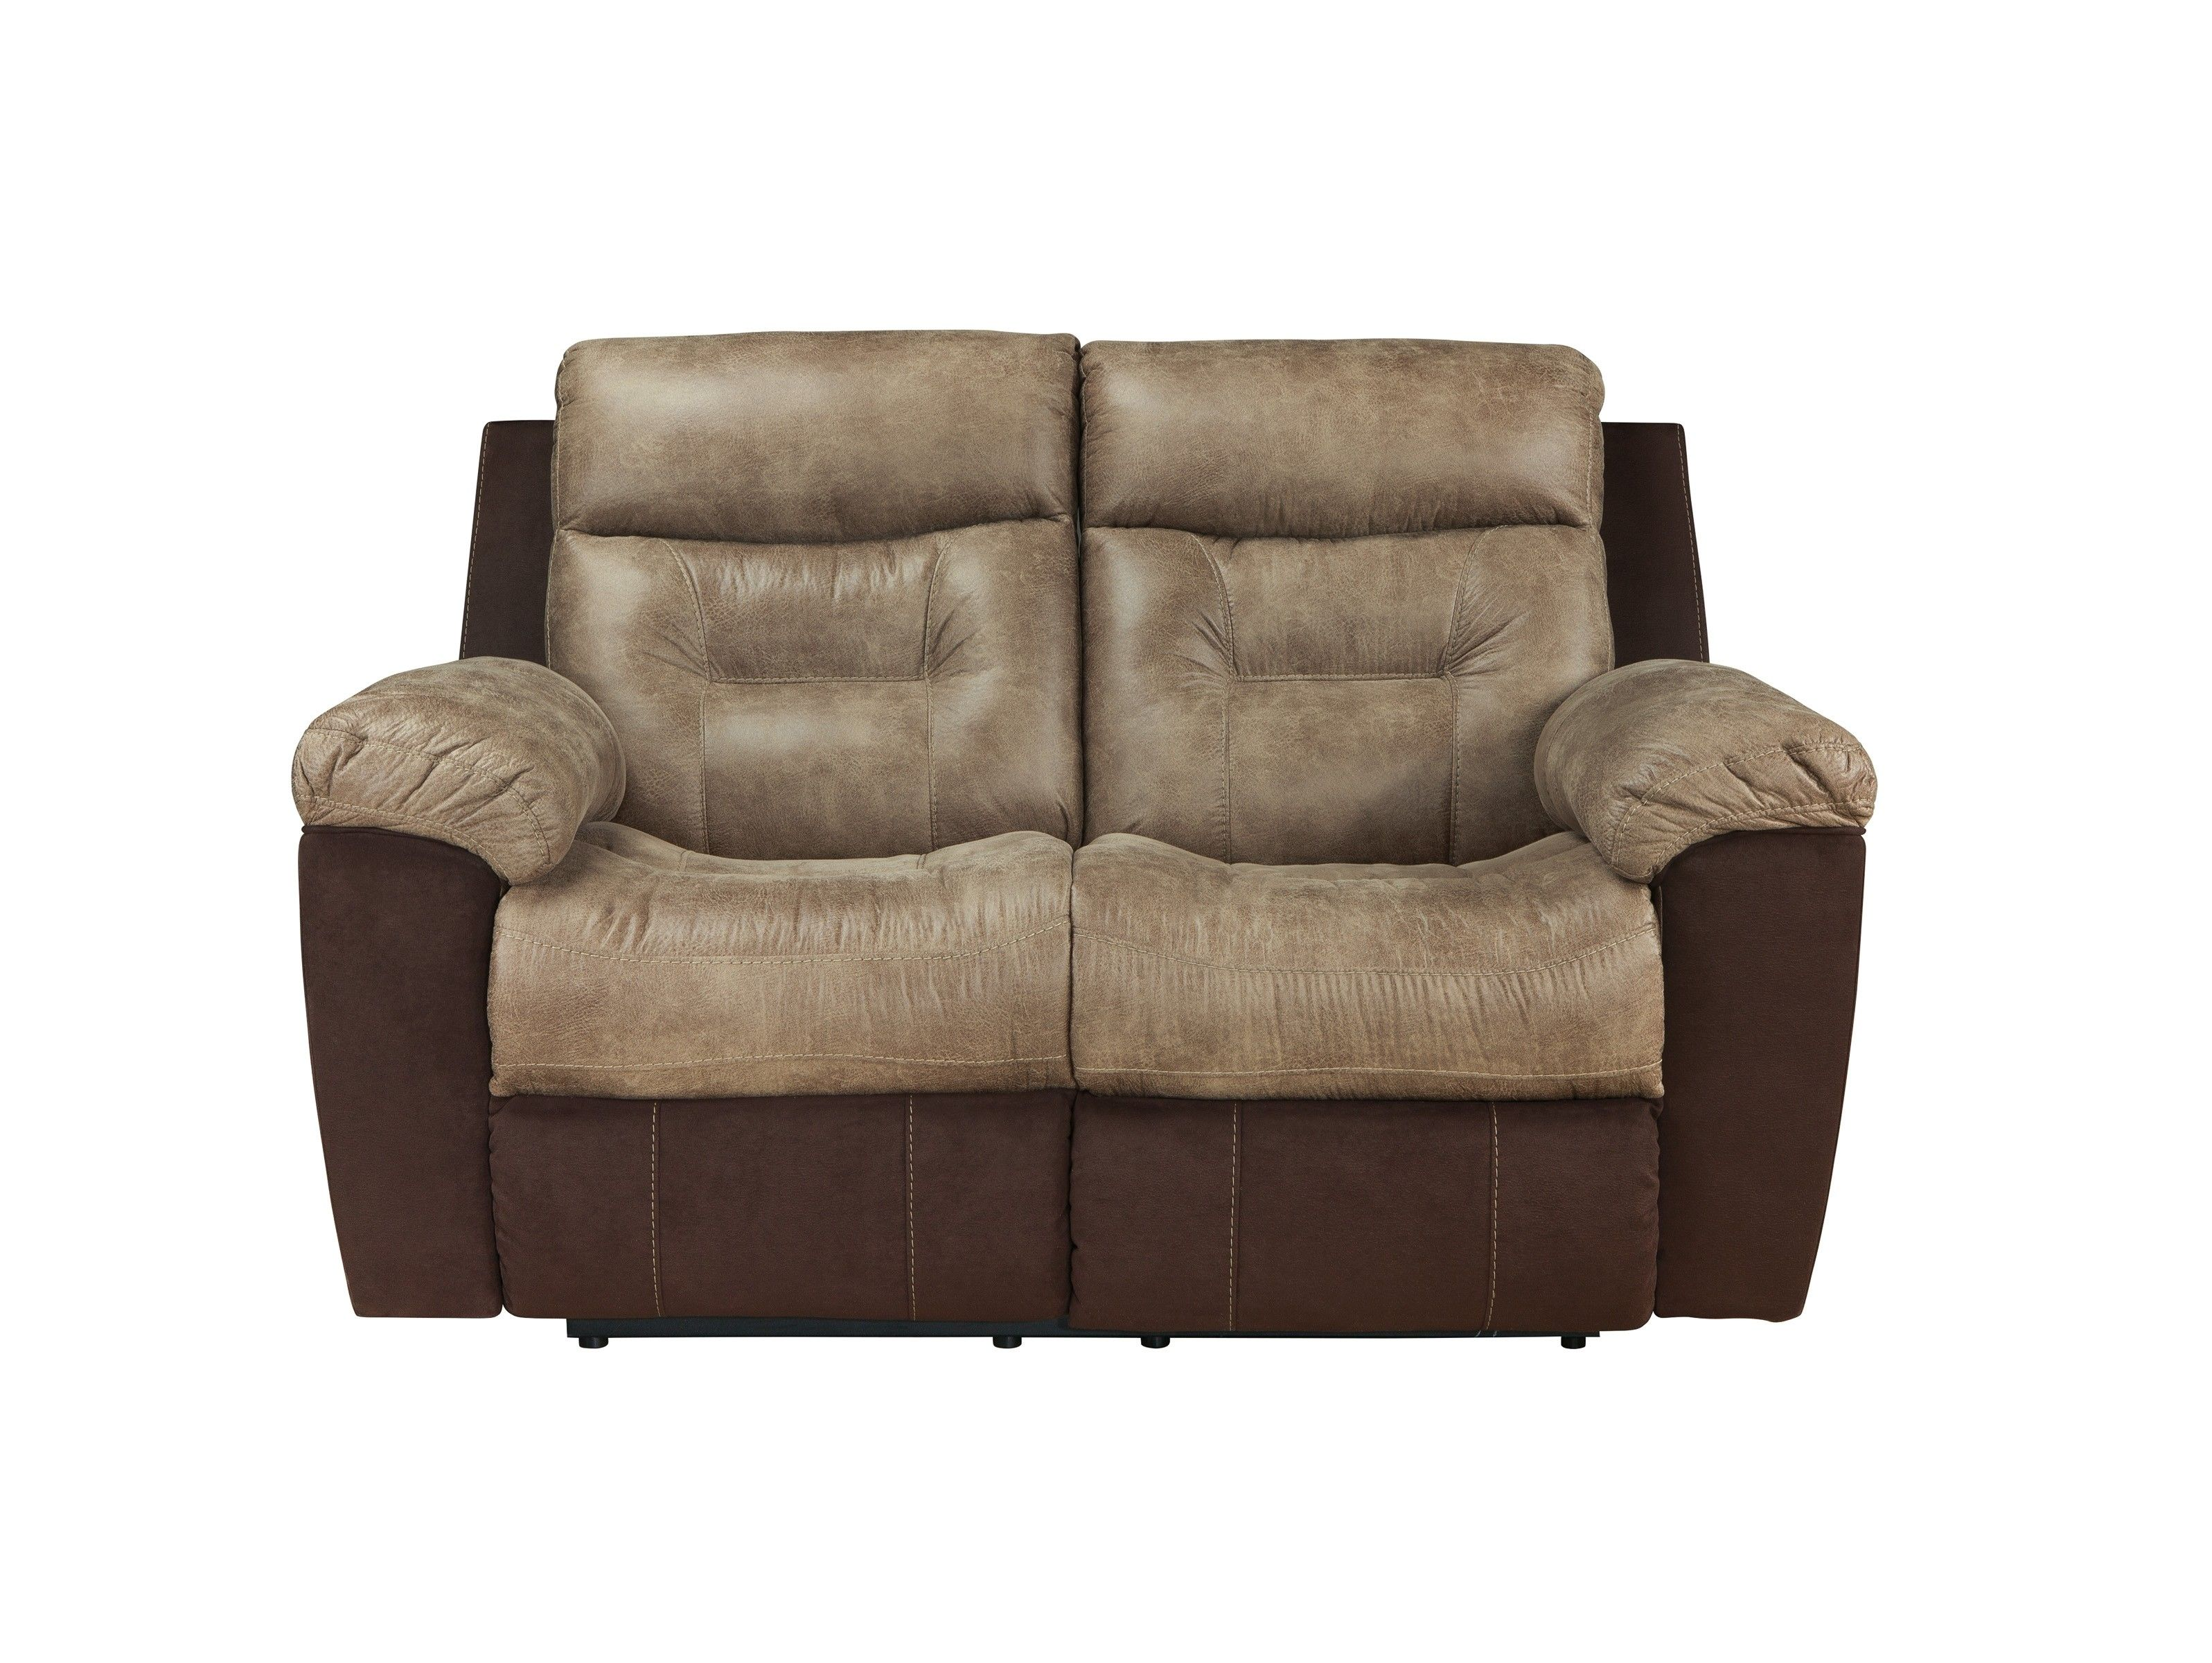 Buy Ashley Furniture Mclaurin Mocha Reclining Loveseat Intended